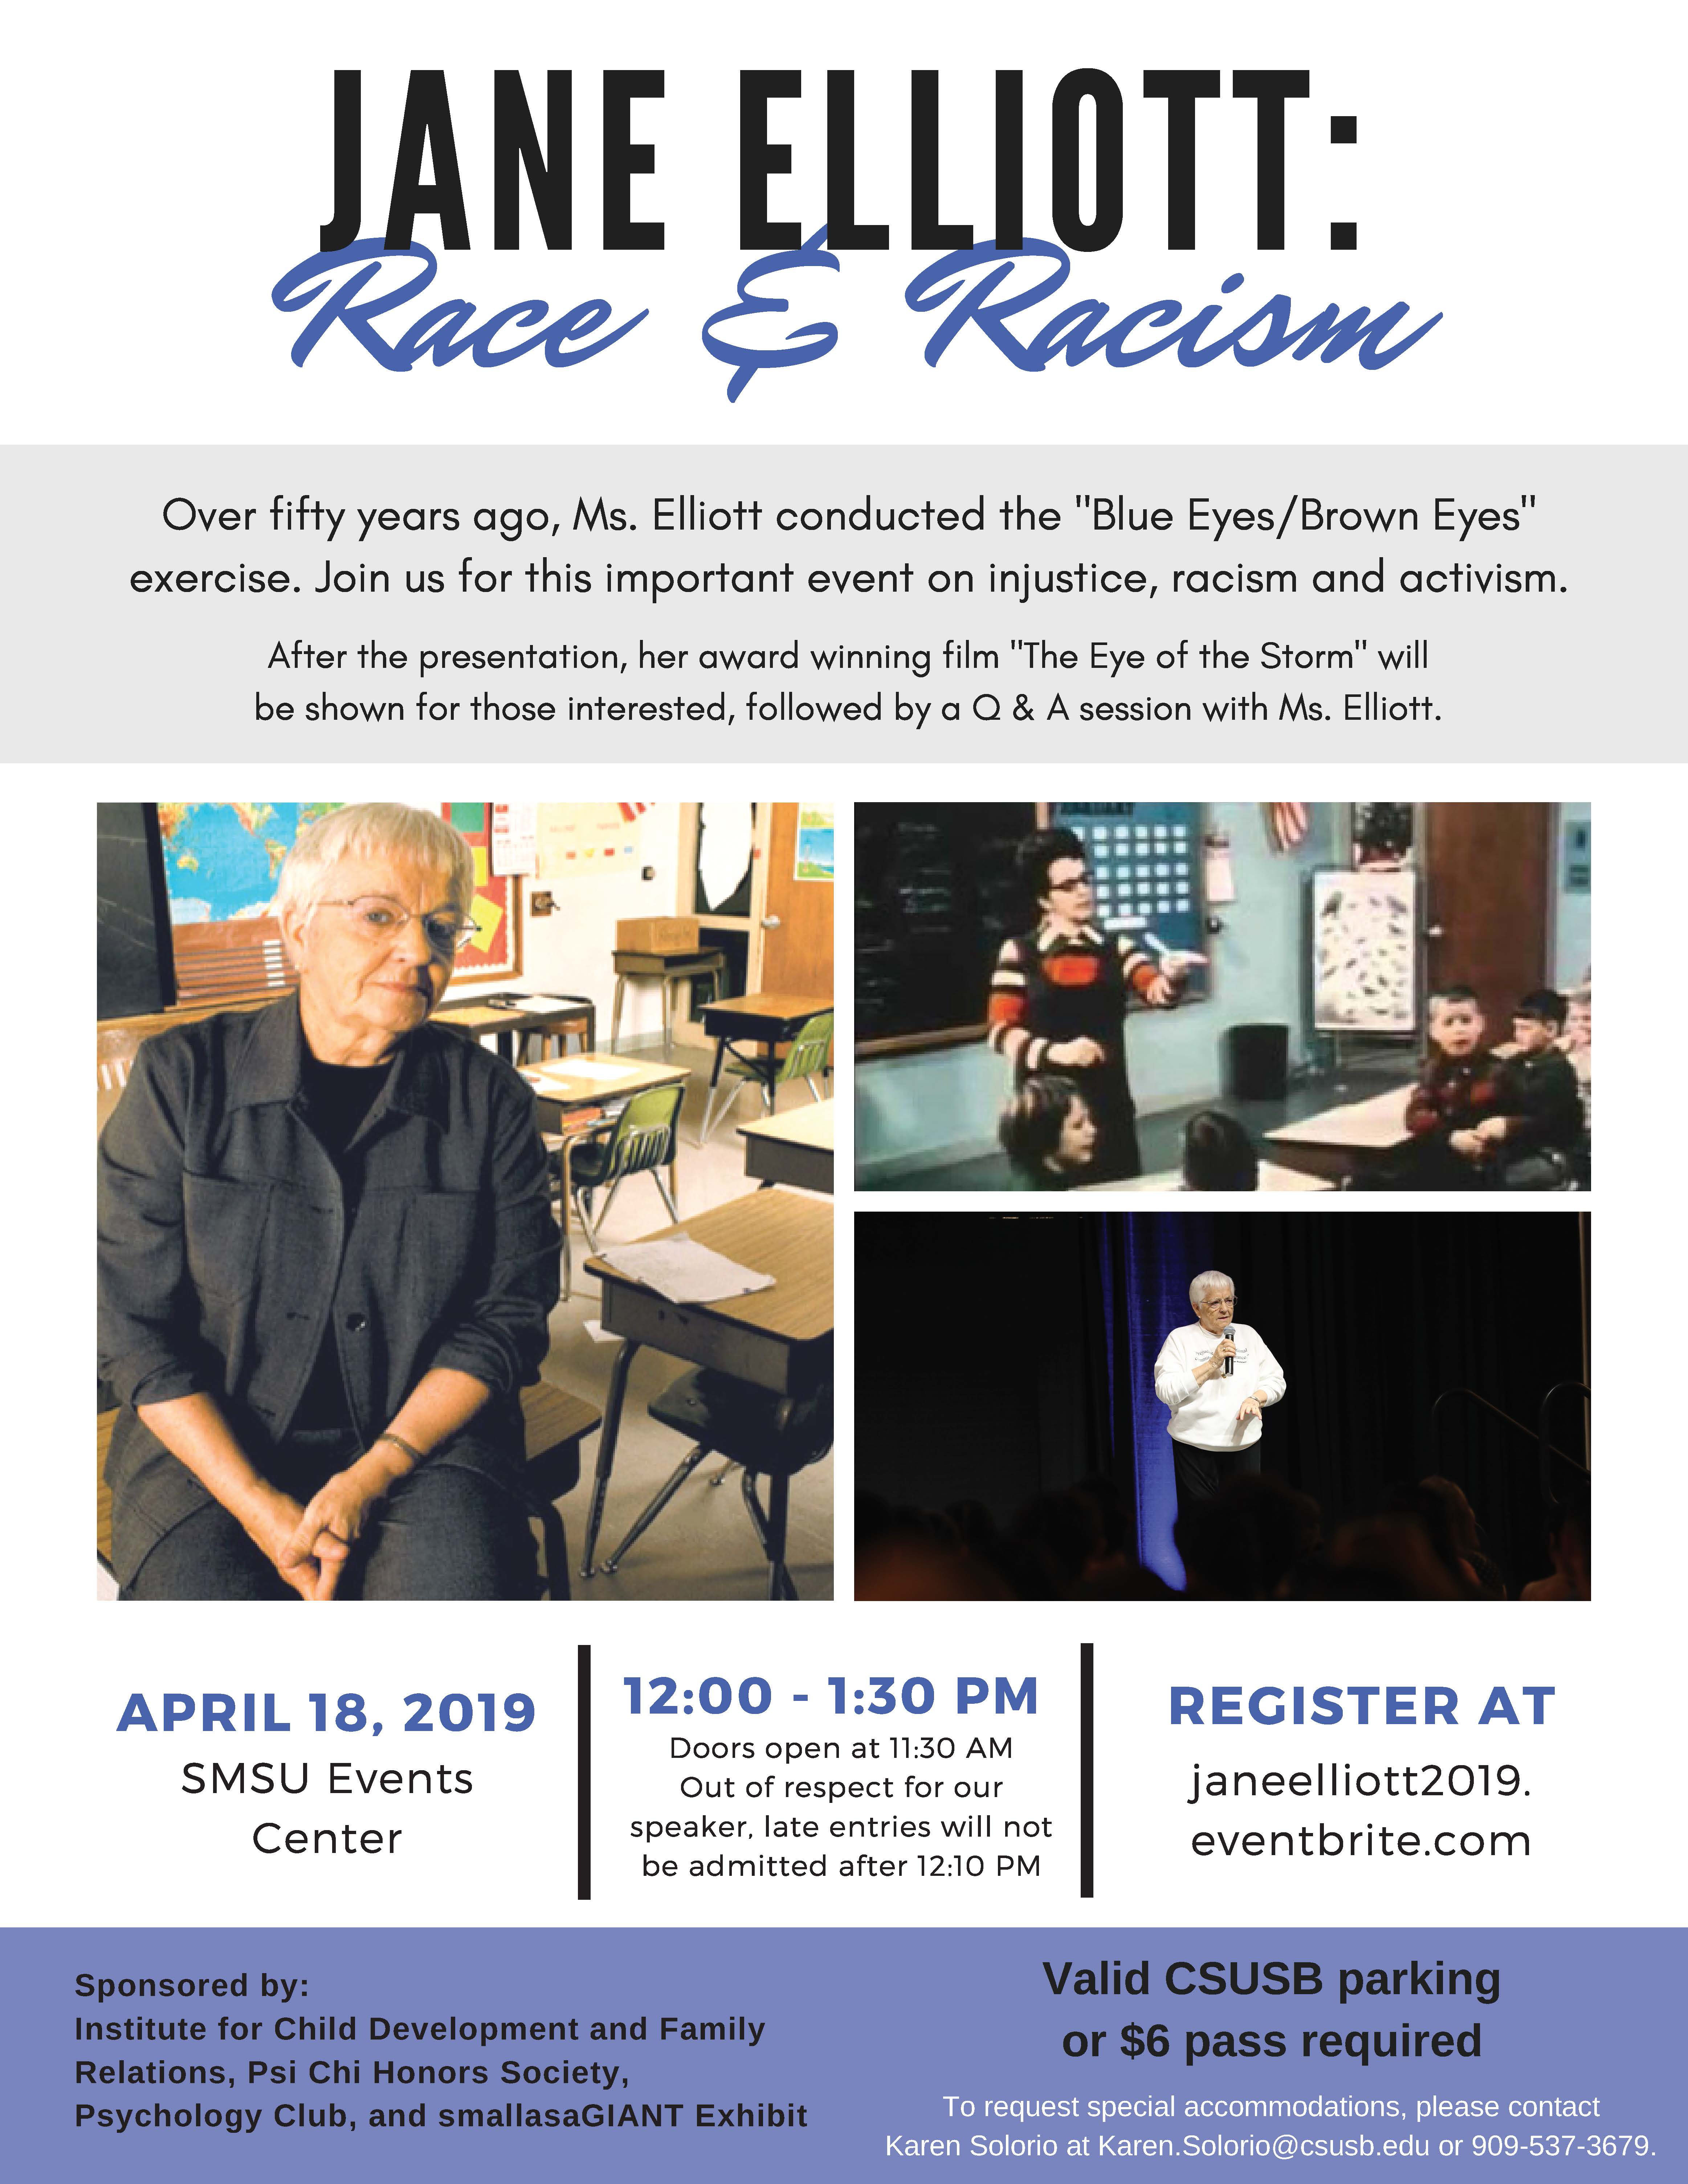 'Jane Elliot on Race and Racism' set for April 18 at CSUSB